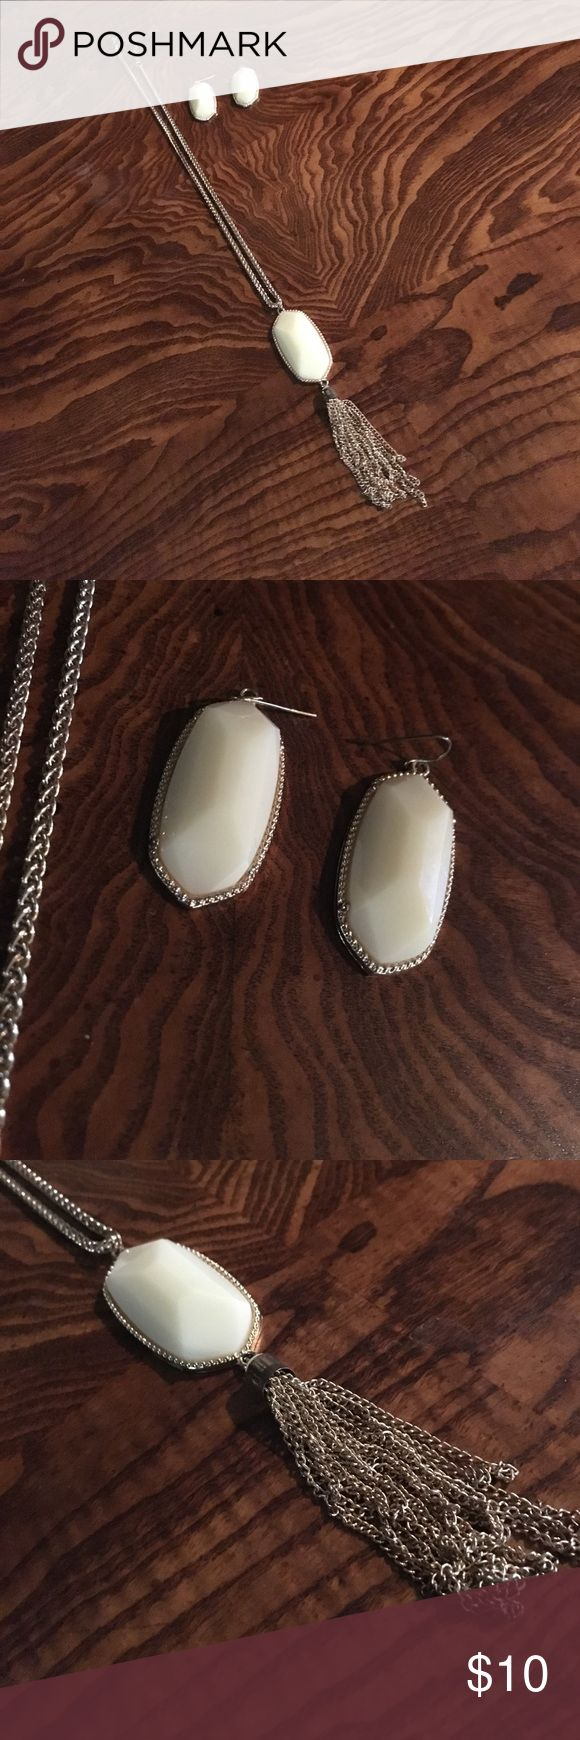 ✨ SET SALE! ✨ EARRING & NECKLACE SET Kendra Scott styled dangle necklace with matching dangle earrings. Cream color. Beautiful set! Excellent condition! NOT REAL KENDRA'S. Tagging for preference. Kendra Scott Jewelry Necklaces